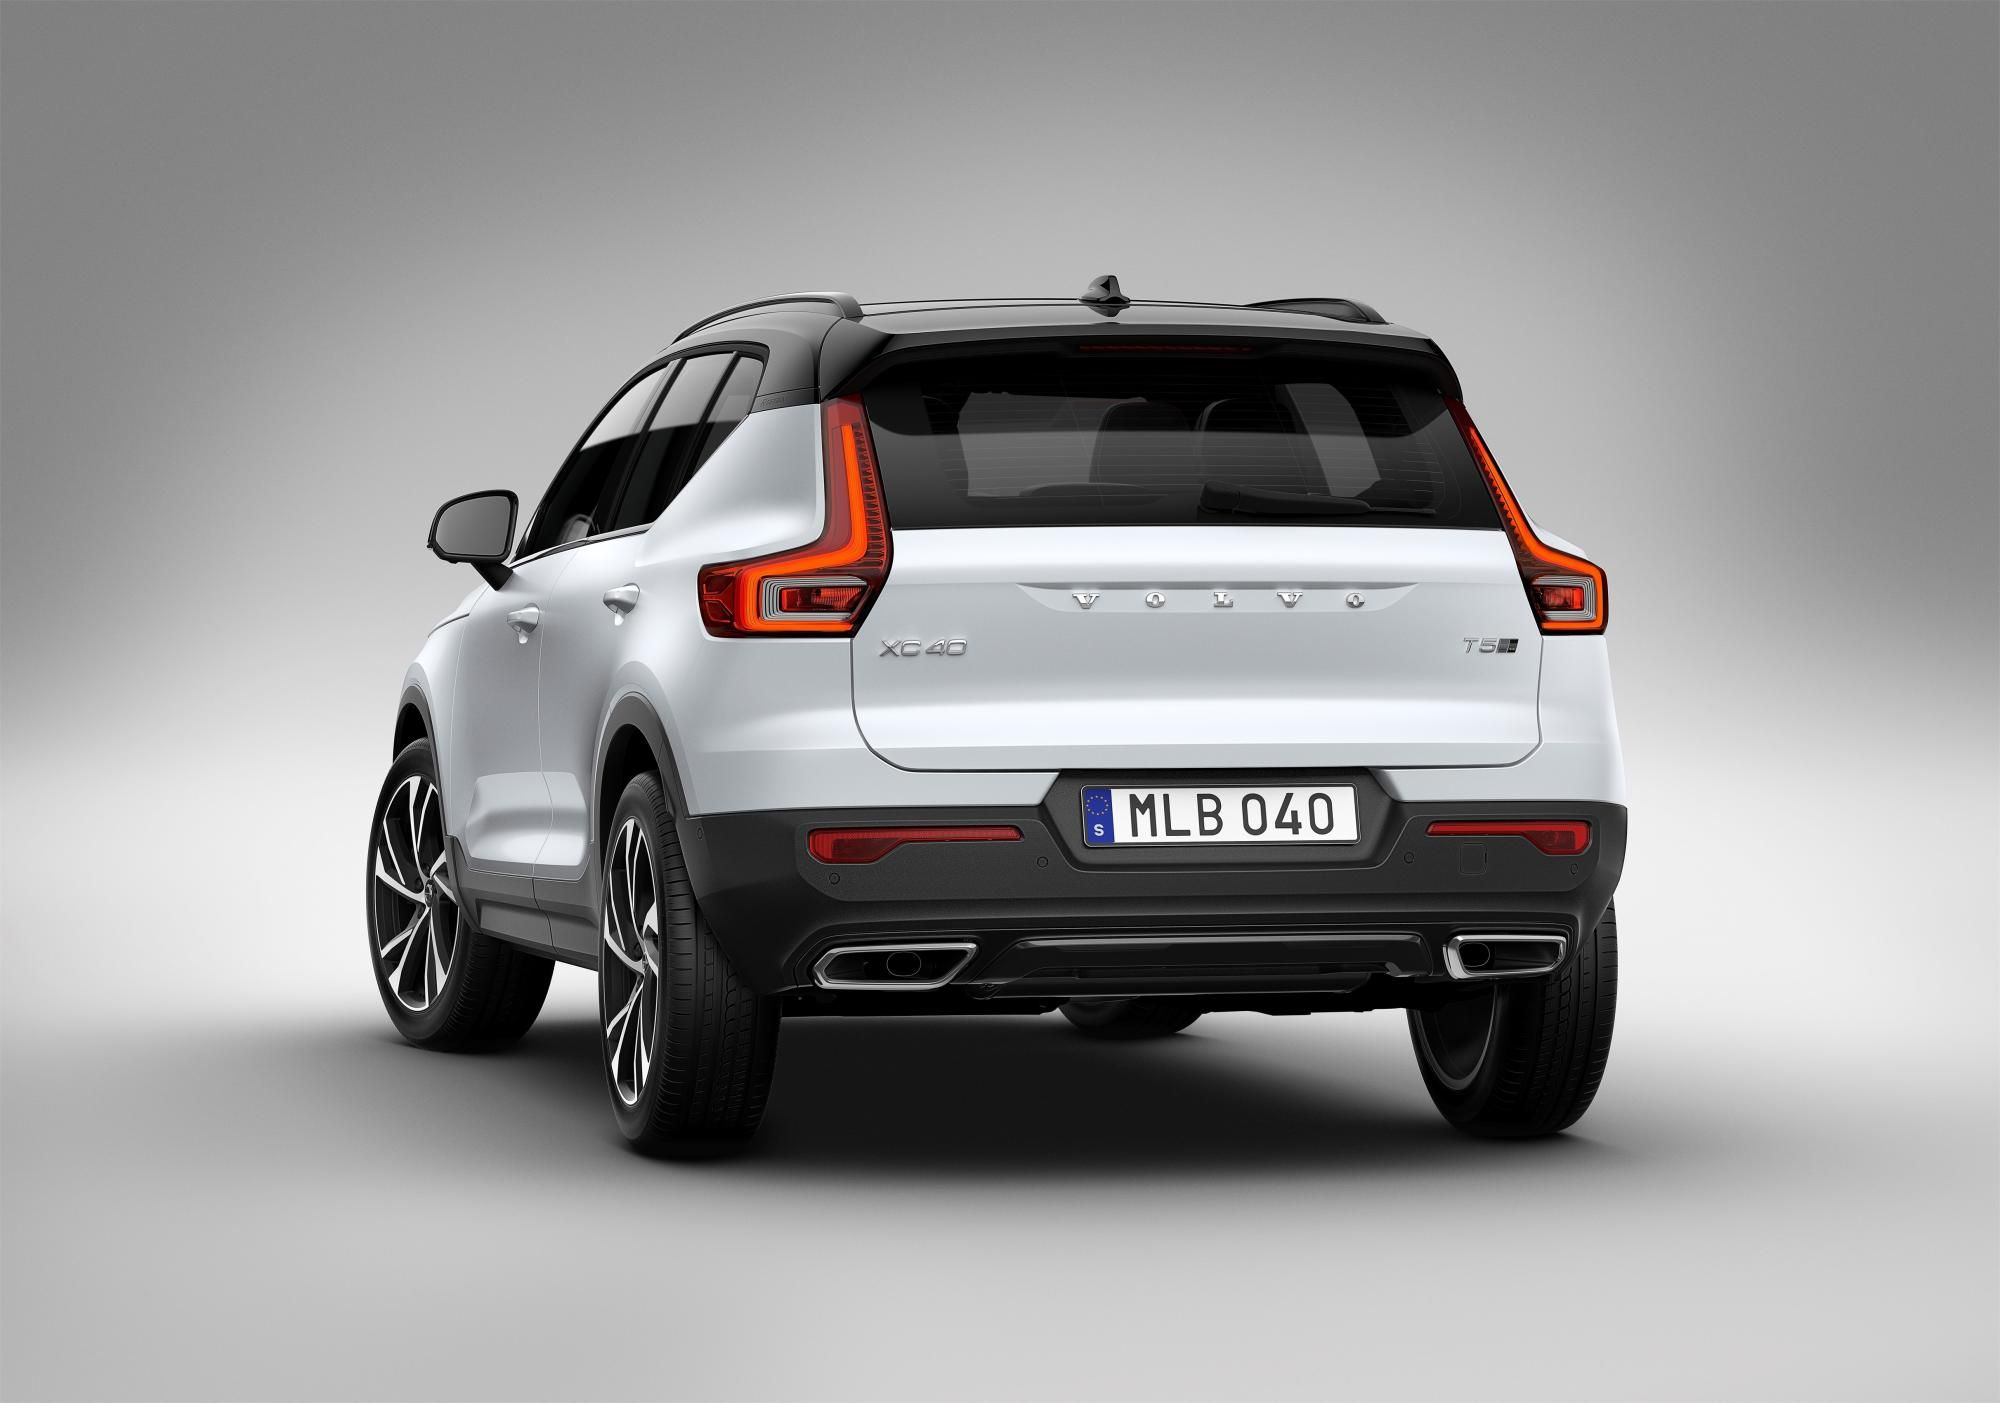 Volvo introduces its first compact SUV, the XC40 Volvo